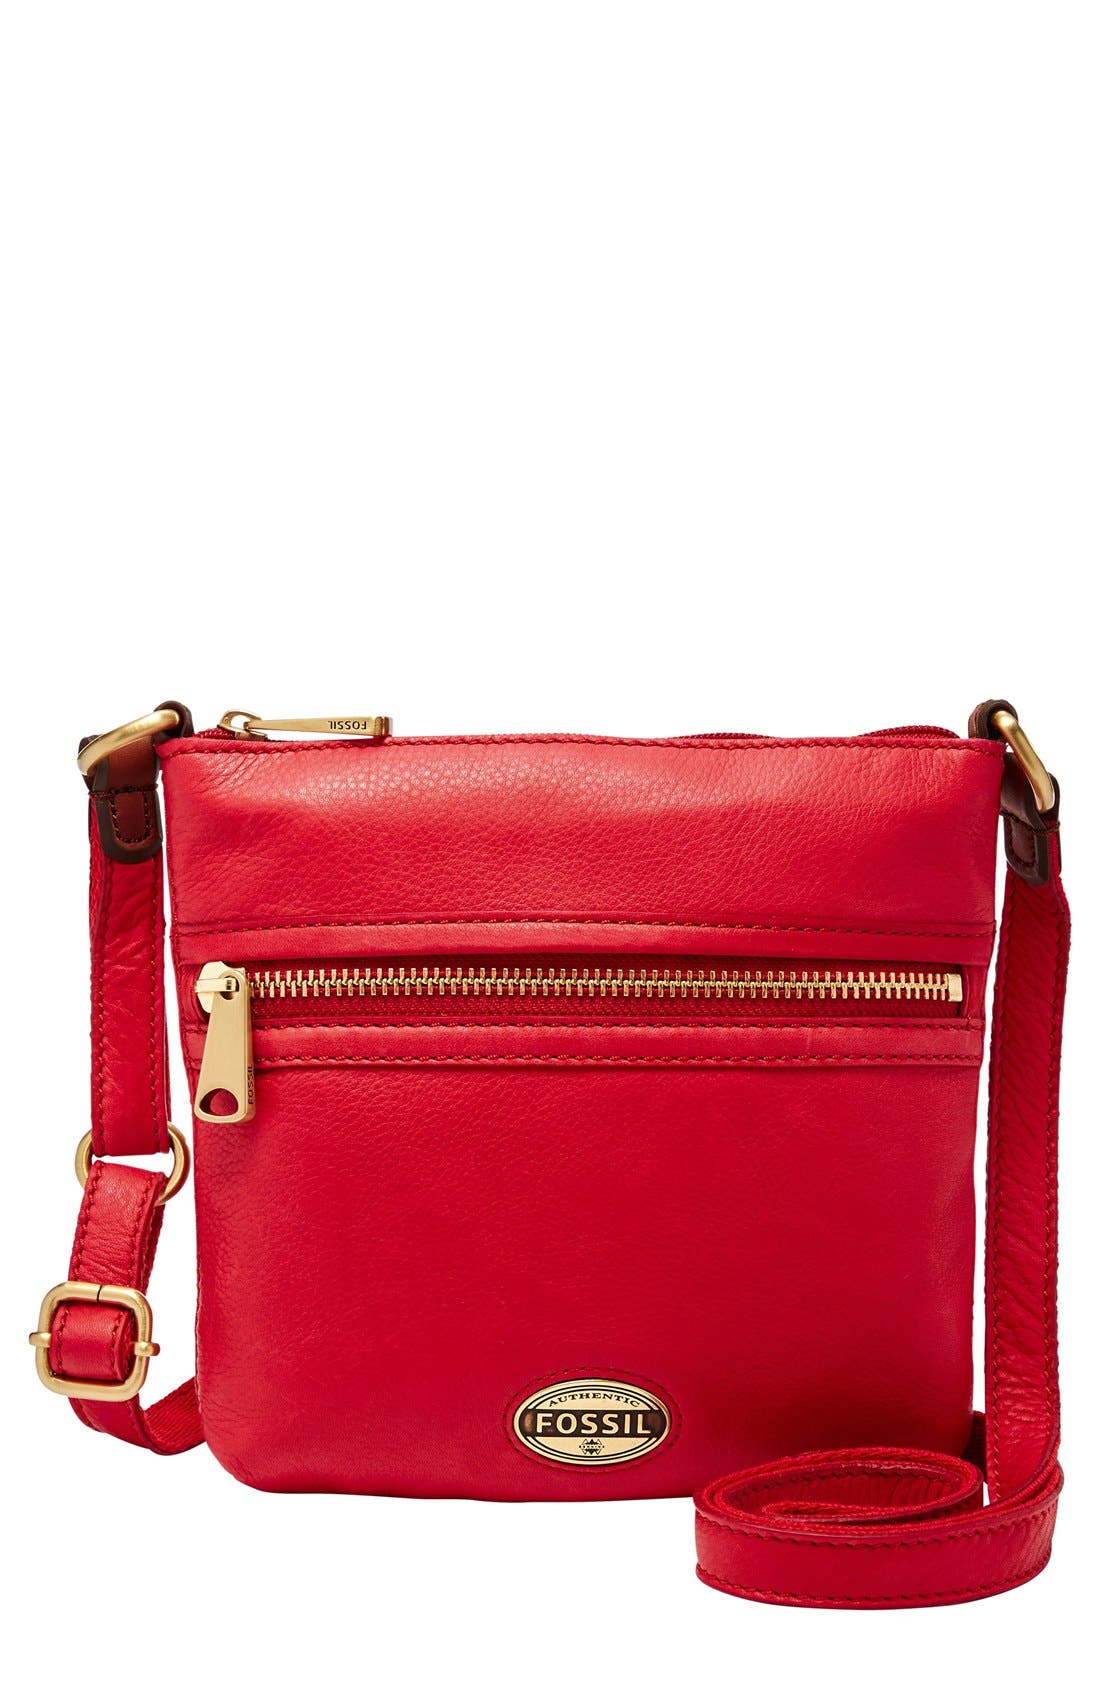 Main Image - Fossil 'Explorer - Mini' Crossbody Bag